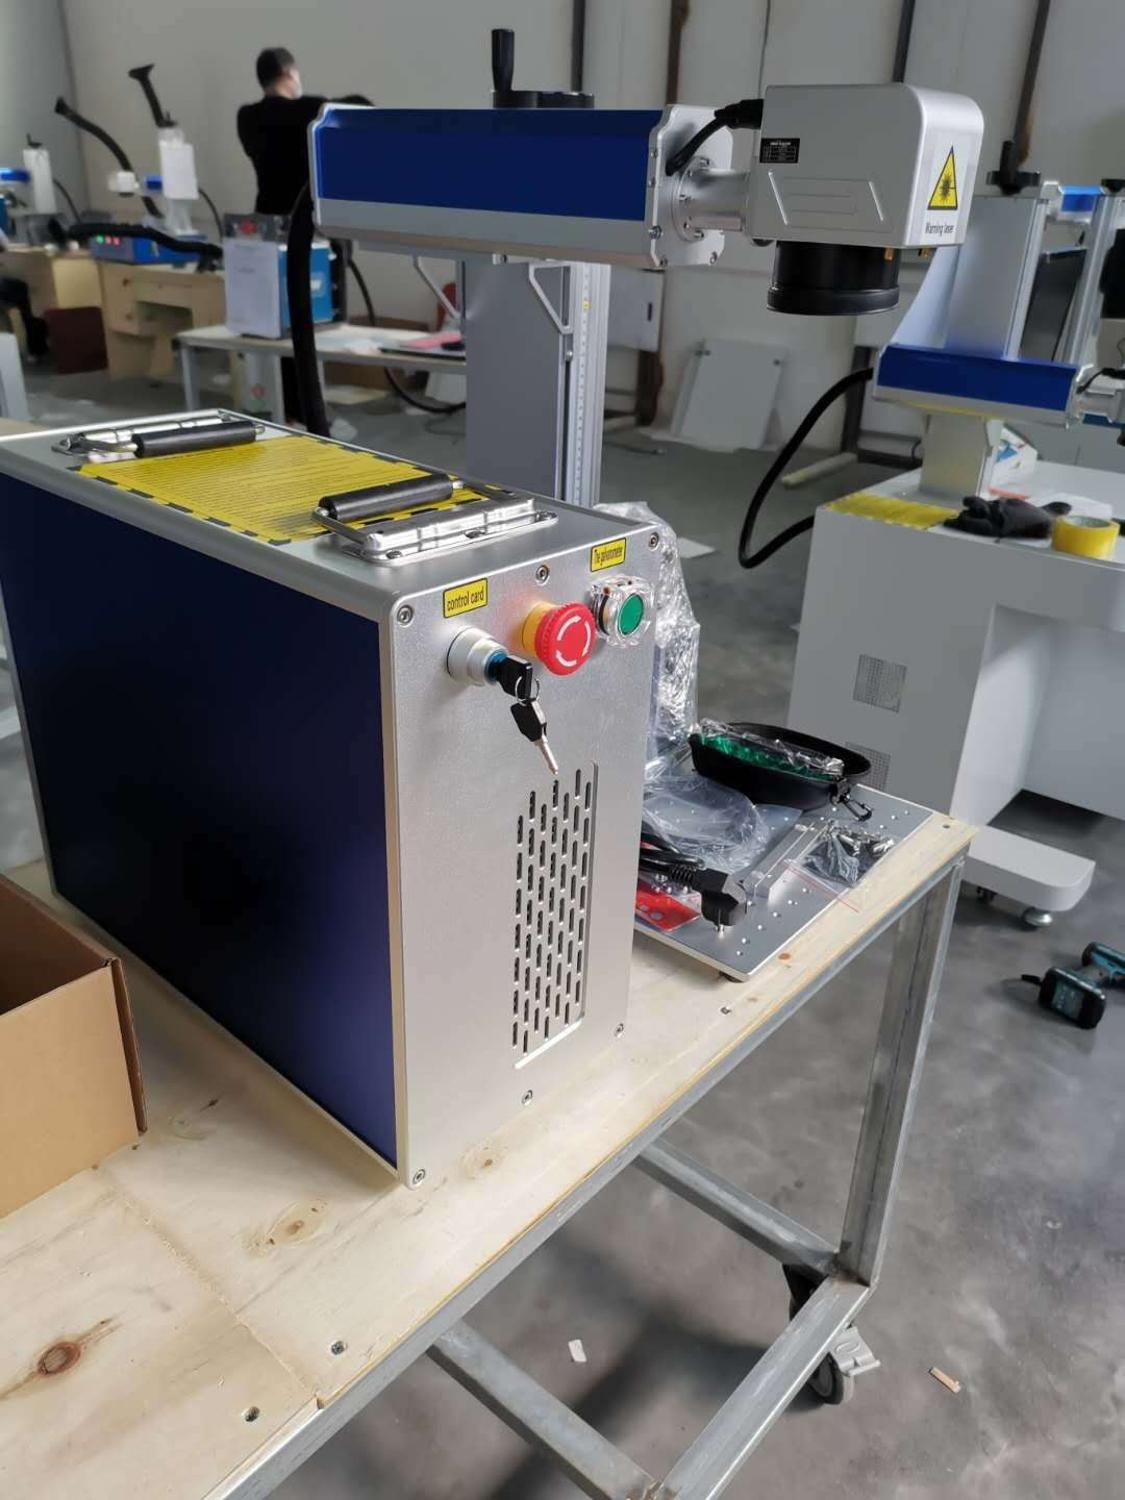 30W MAX Raycus And JPT Fiber Laser Marking Machine With 200-200mm Working Table 3